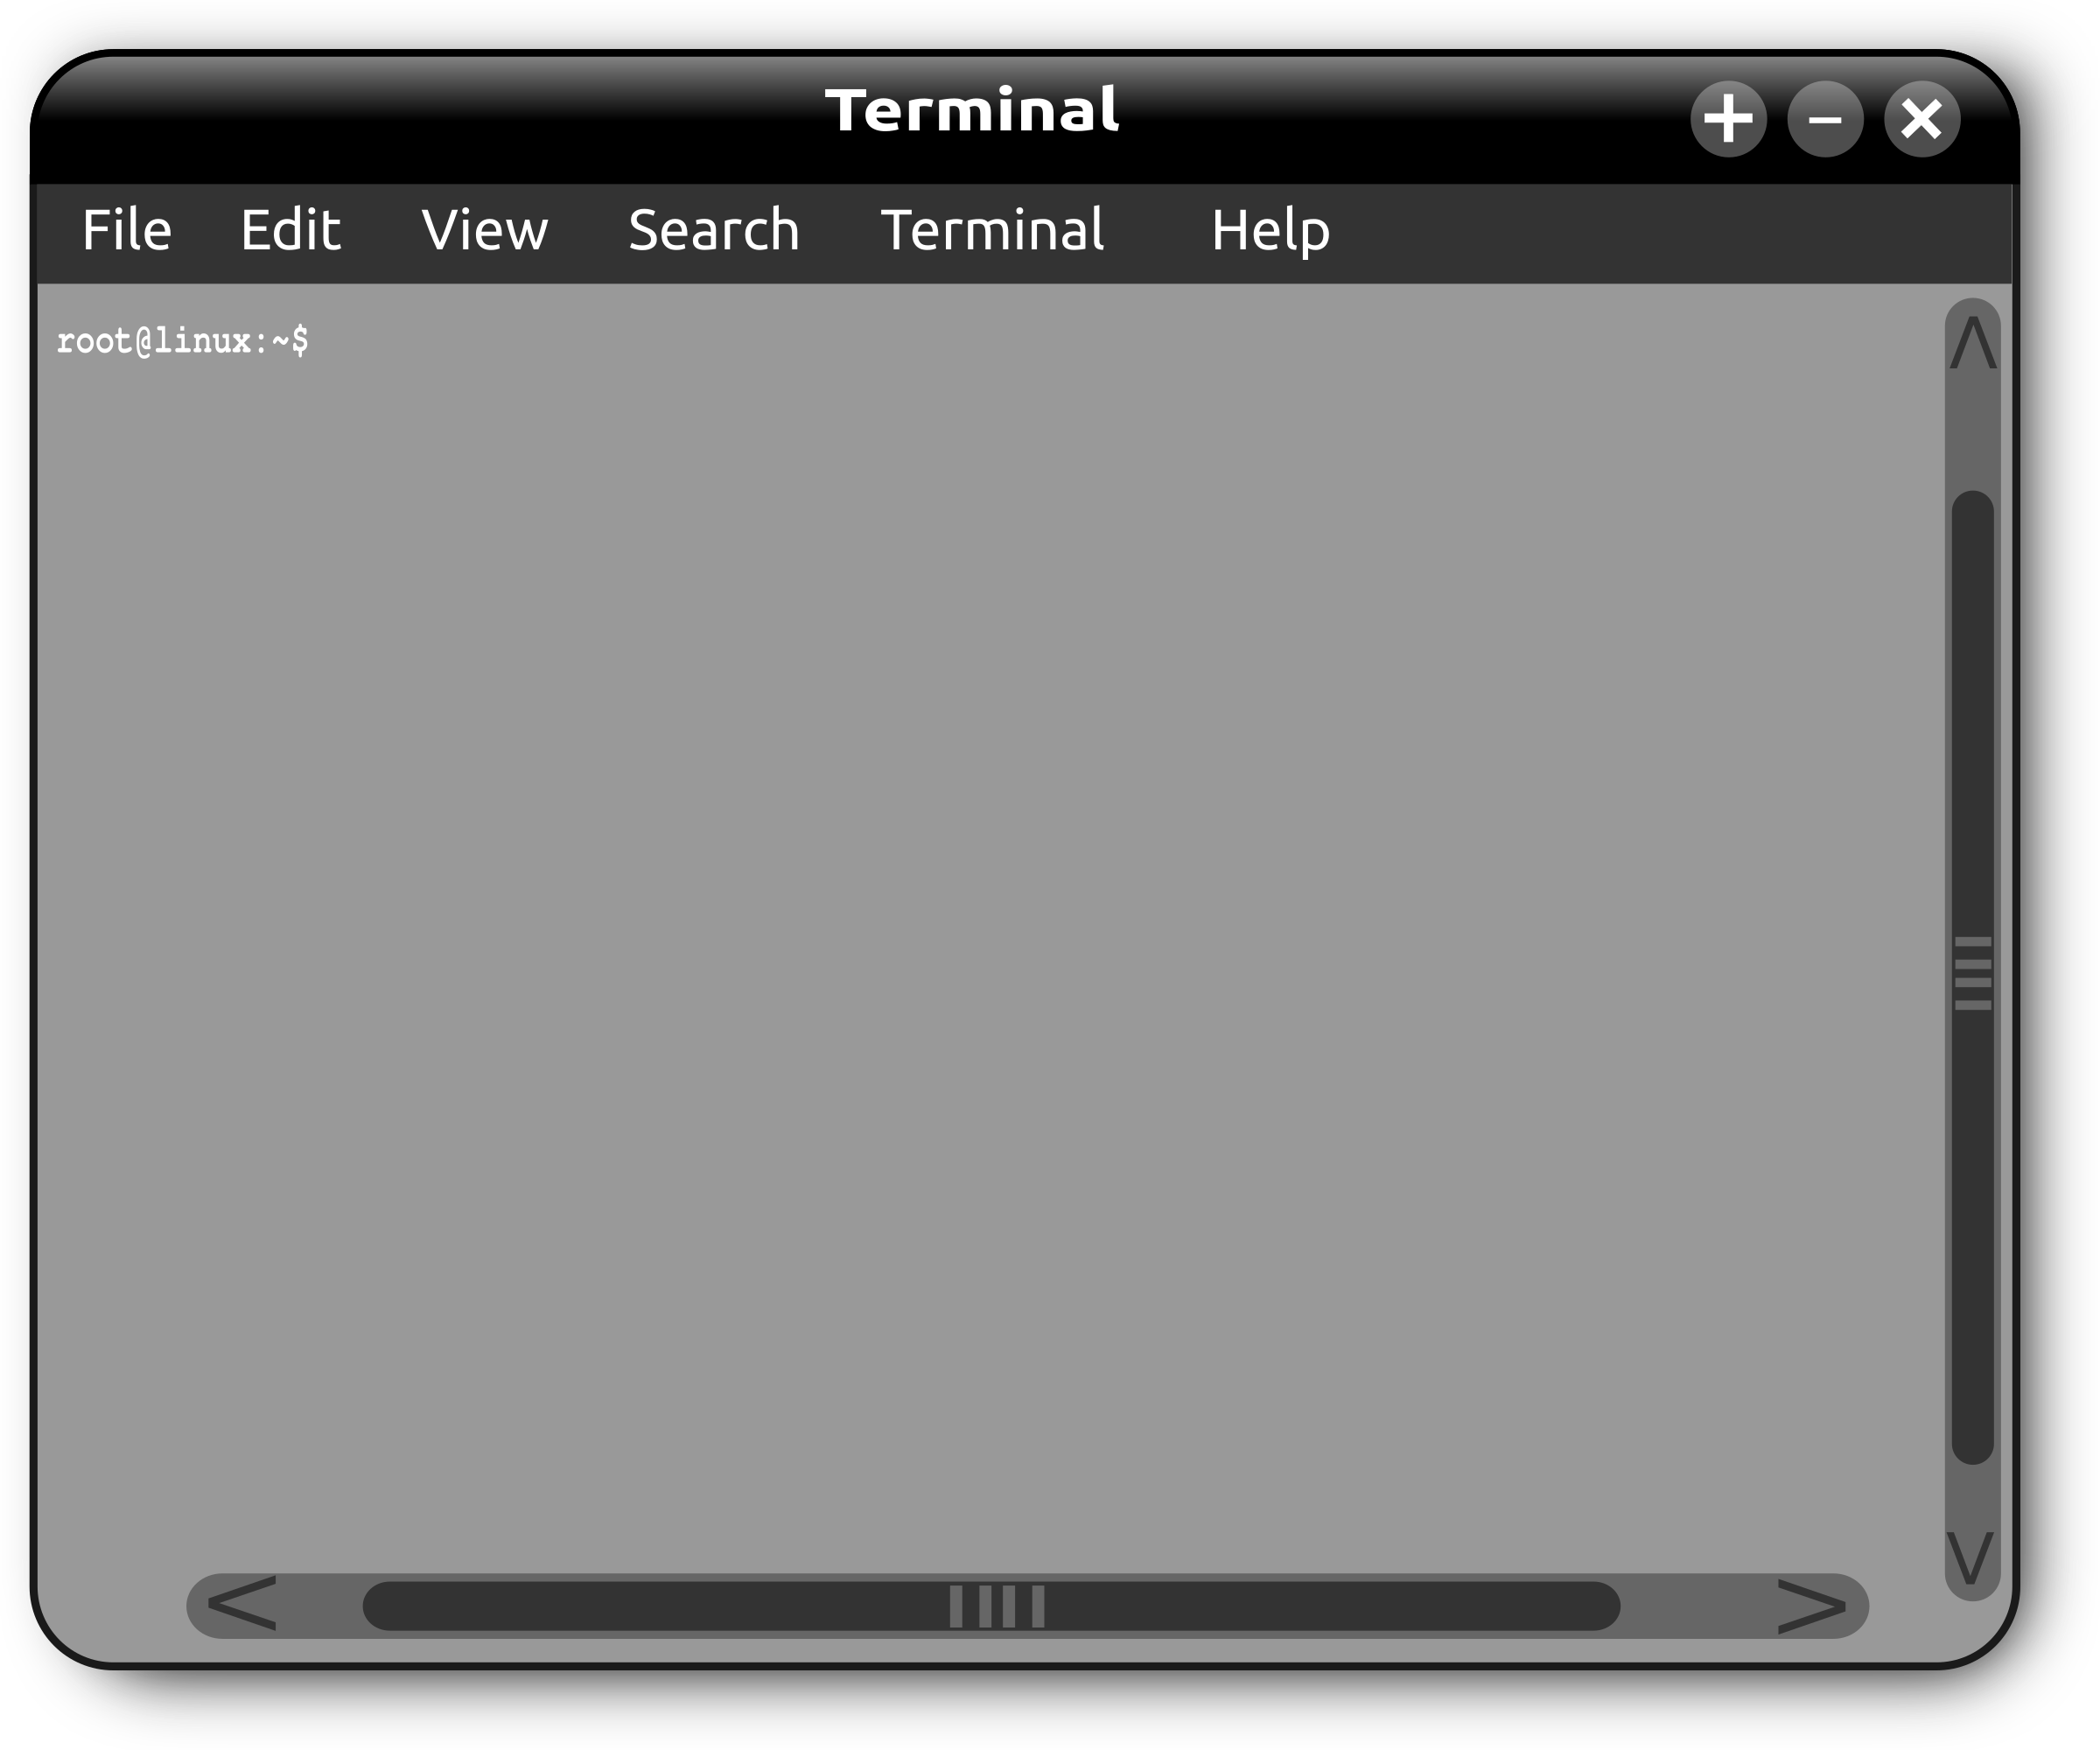 Linux Terminal Window by gsagri04